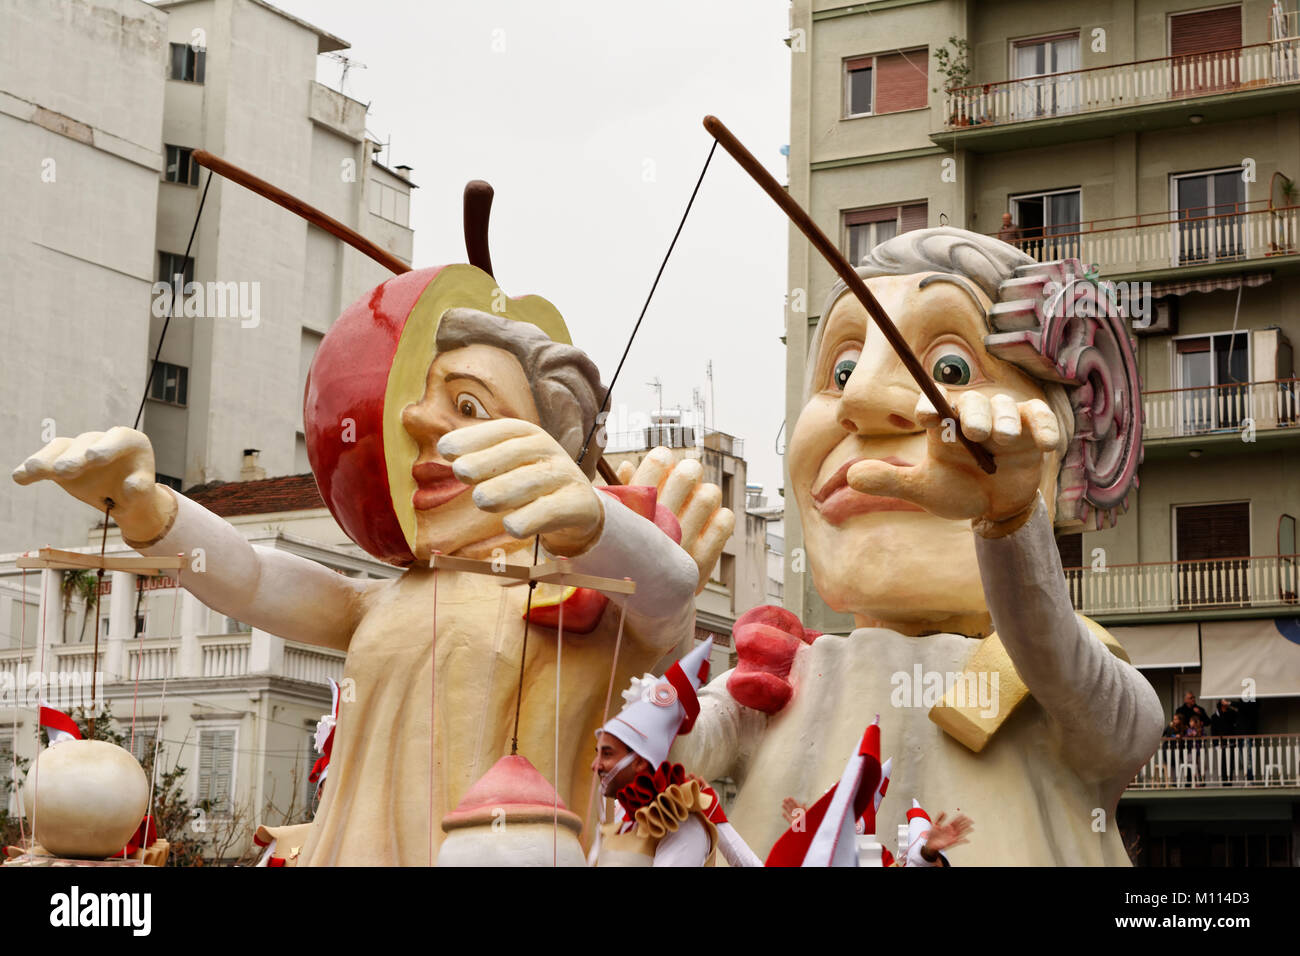 Patras carnival pasrade 2017-Politicians puppet show - Stock Image